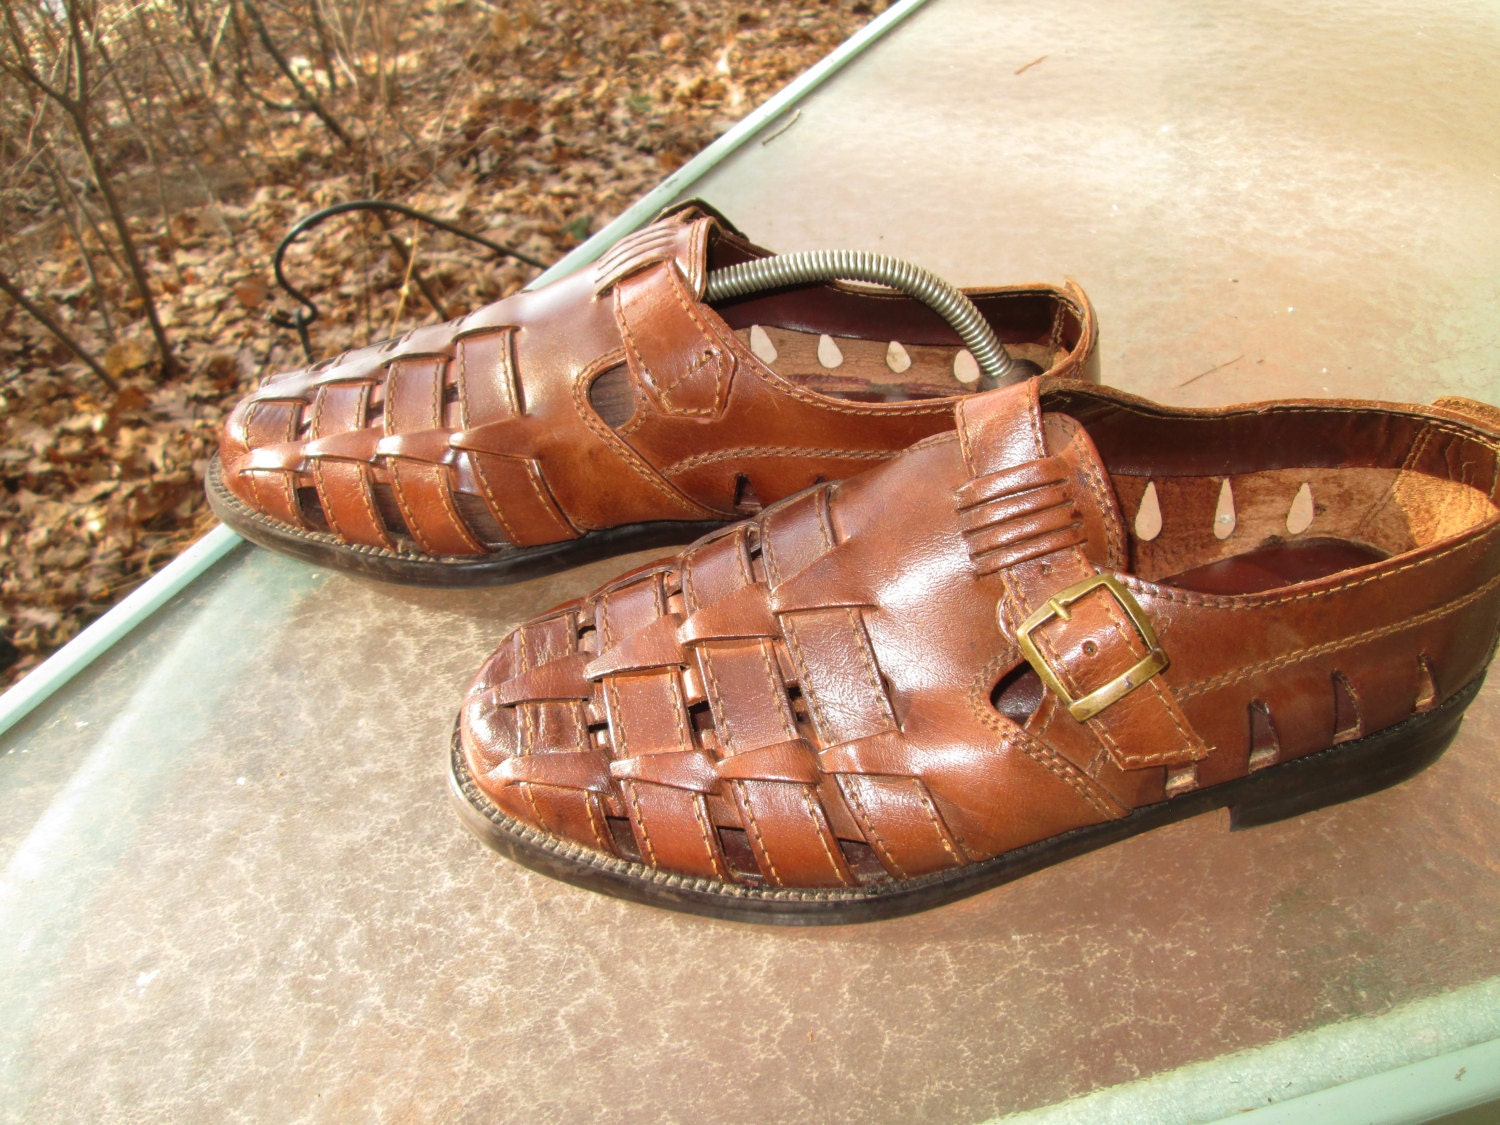 Dukes roller shoes - Mens Brown Leather Vintage Huarache Style Woven Leather Shoe Made In India For Verde Mens Size 10 M Hip Mod Reteo Steampunk Spring Shoe